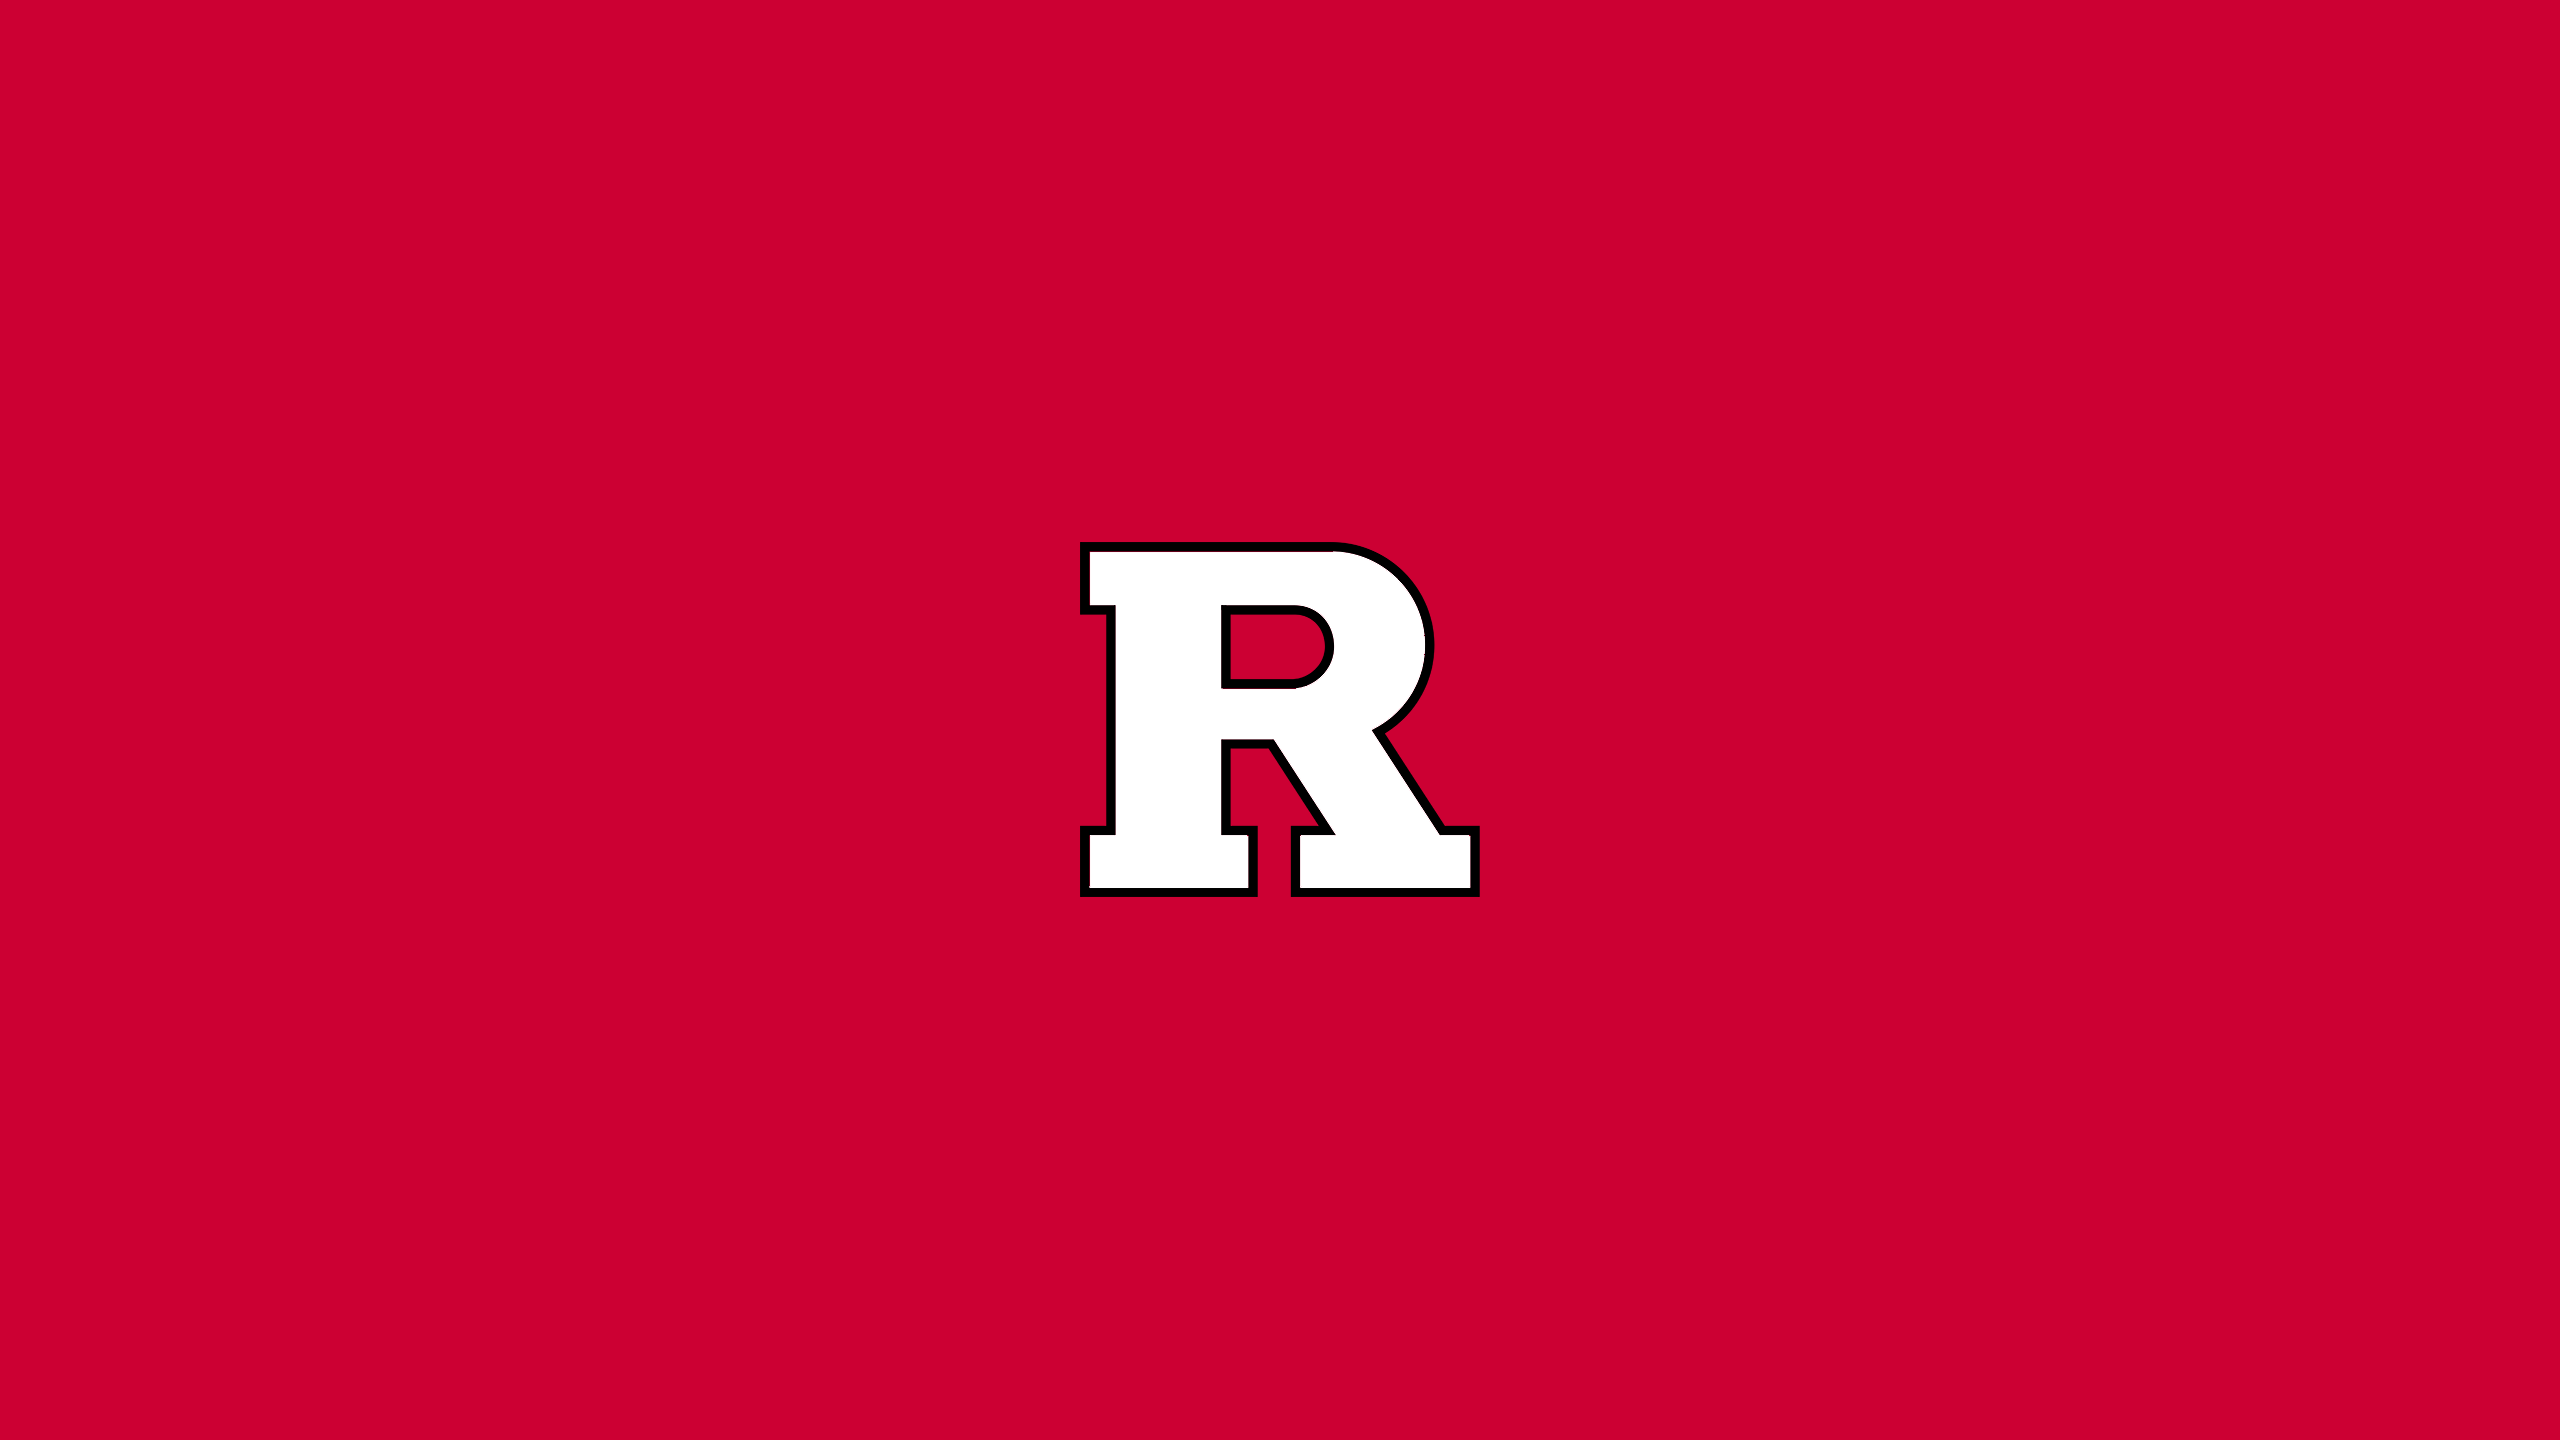 Rutgers University Scarlet Knights